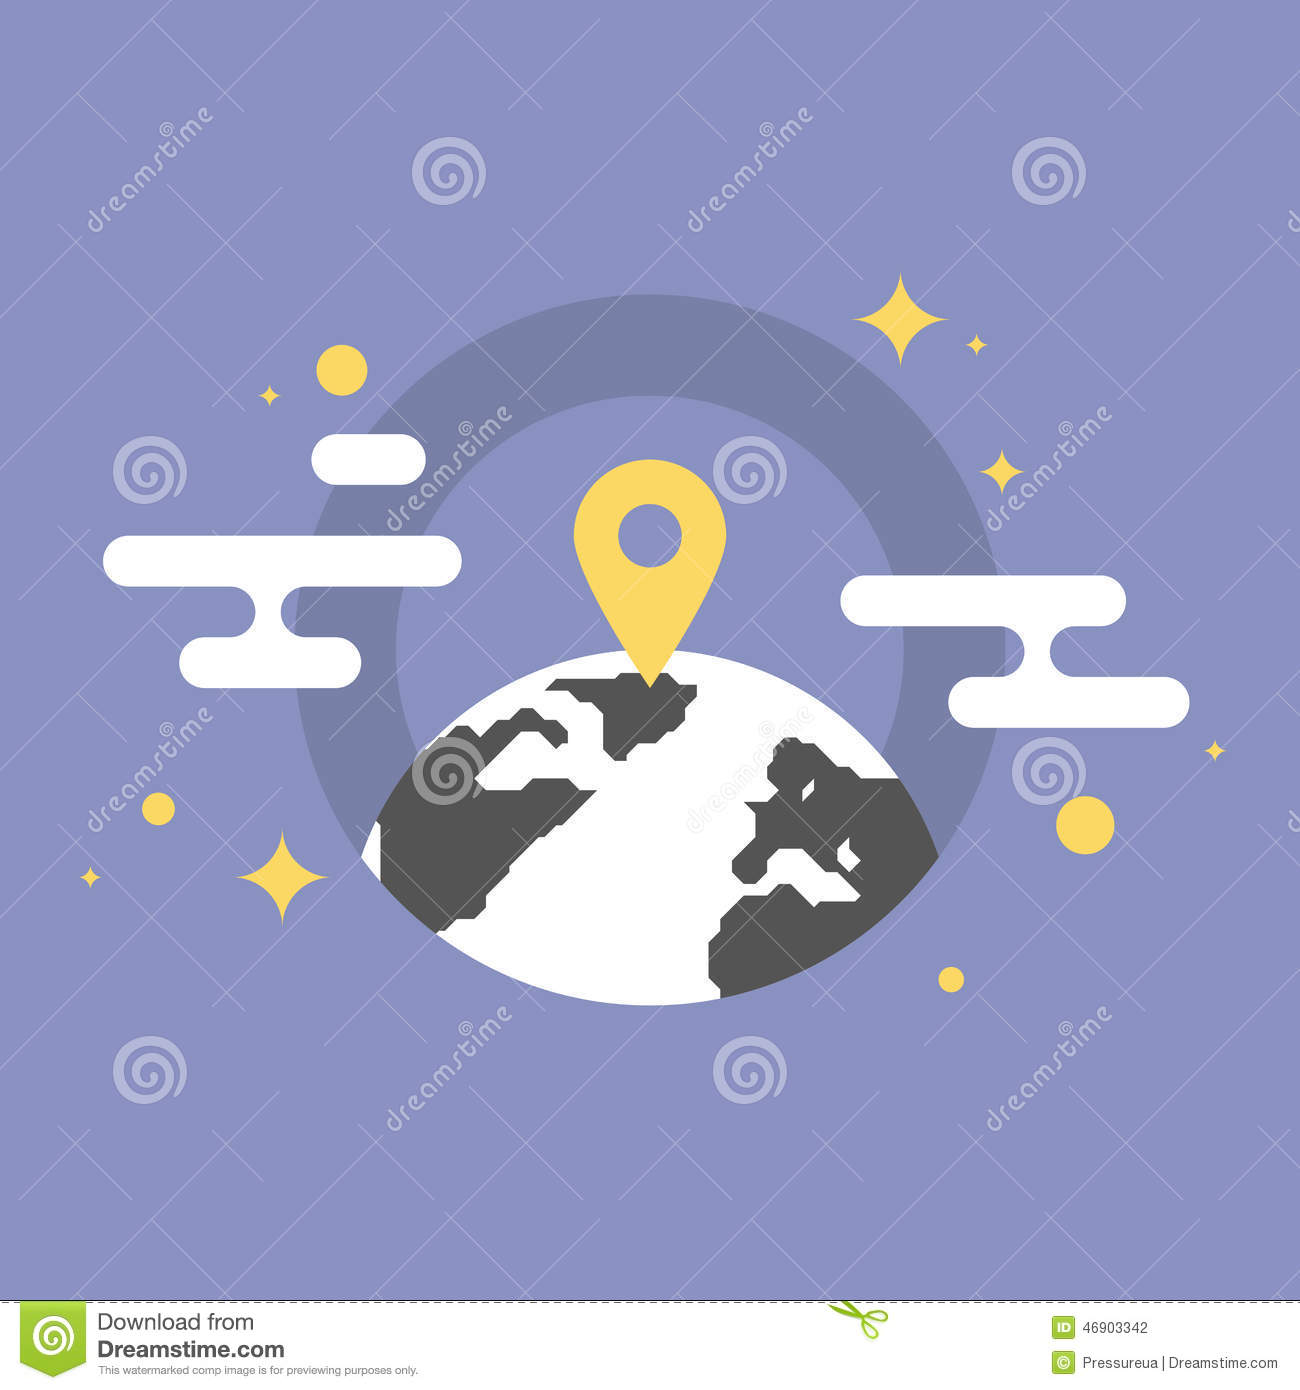 Global location flat icon illustration stock illustration image global location flat icon illustration gumiabroncs Gallery